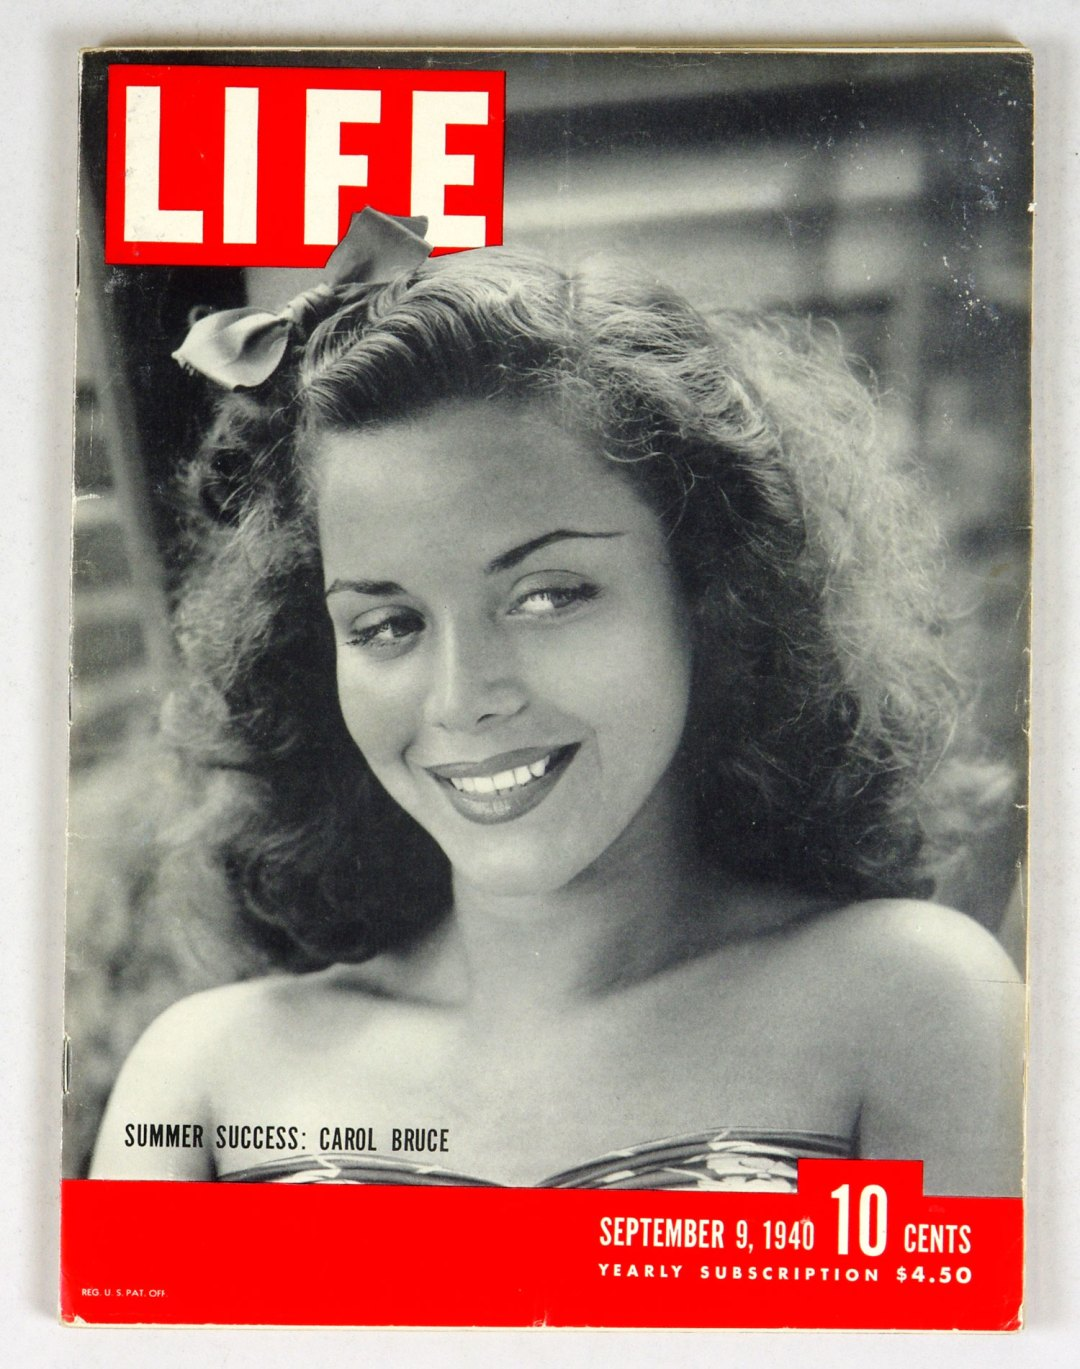 LIFE Magazine 1940 September 9 Summer Success Carol Bruce